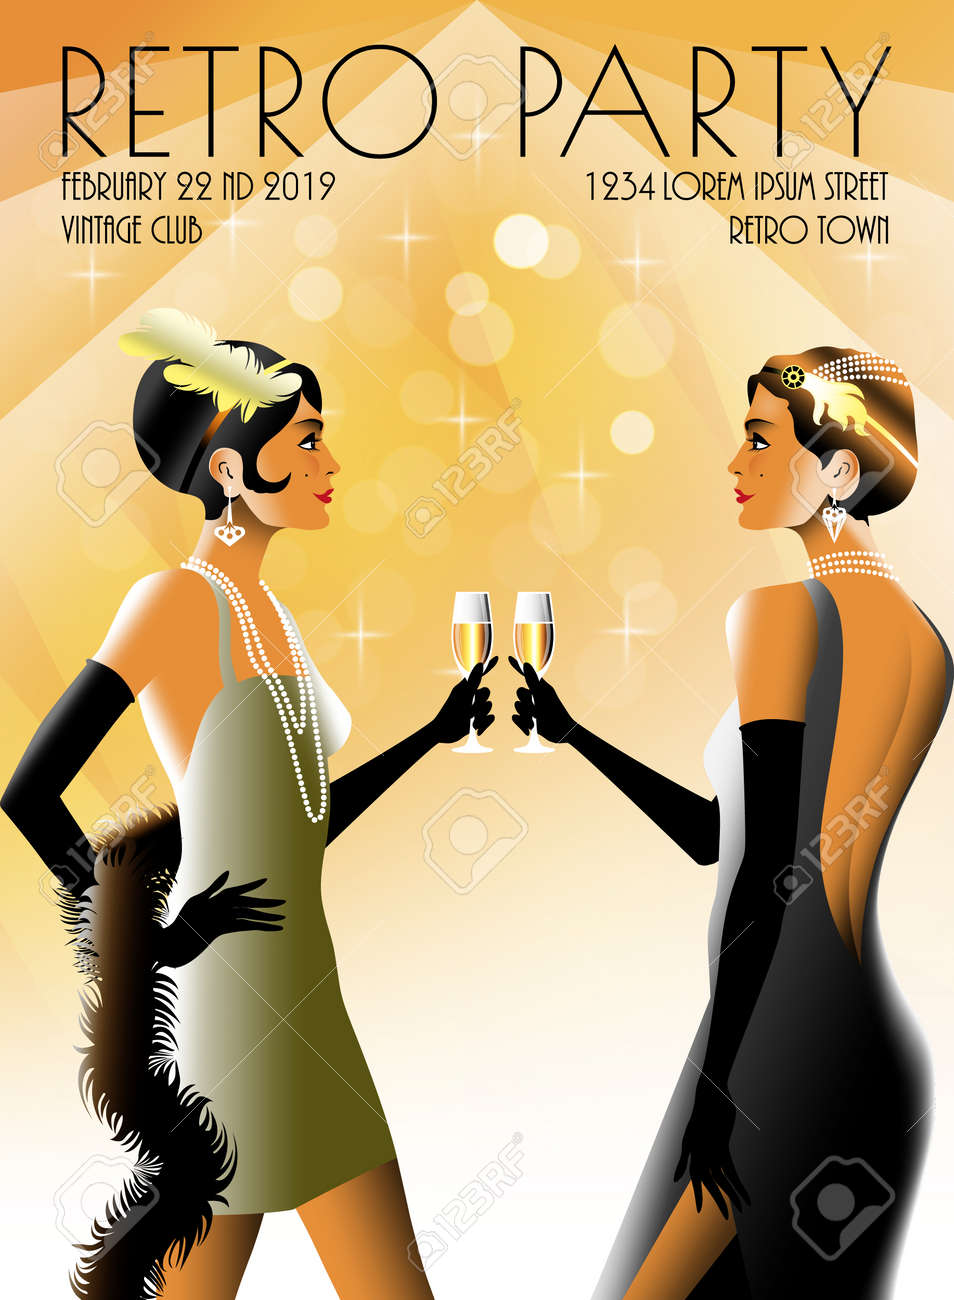 2 Flapper Girls At A Party In The Style Of The Early 20th Century